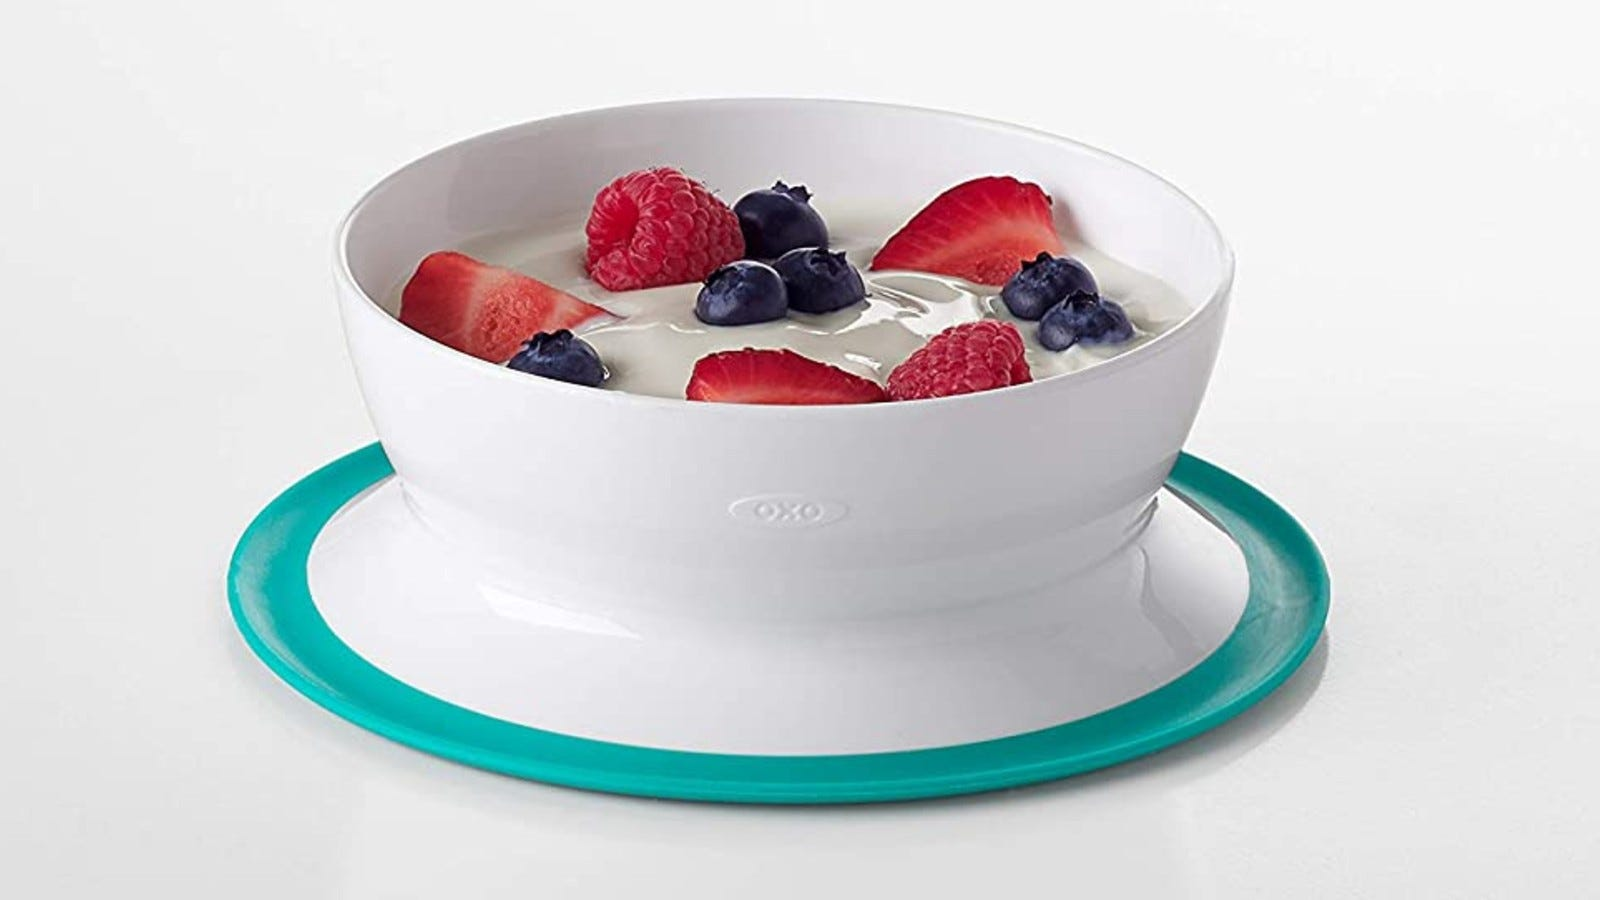 The OXO Tot Stick and Stay bowl filled with yogurt and berries.